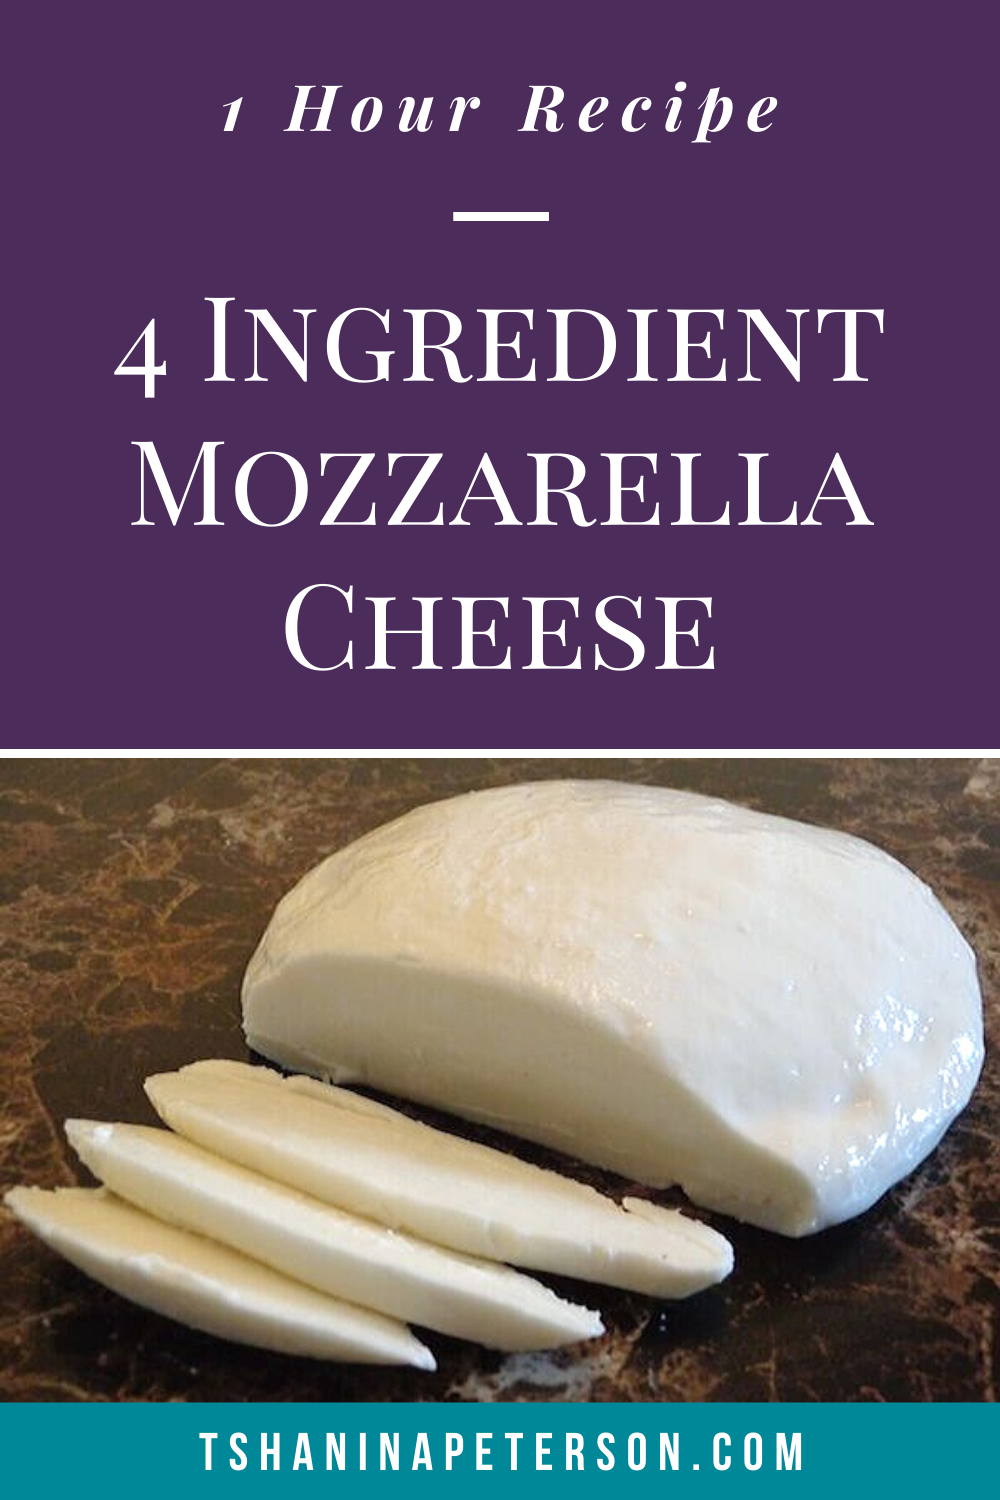 slices of mozzarella cheese